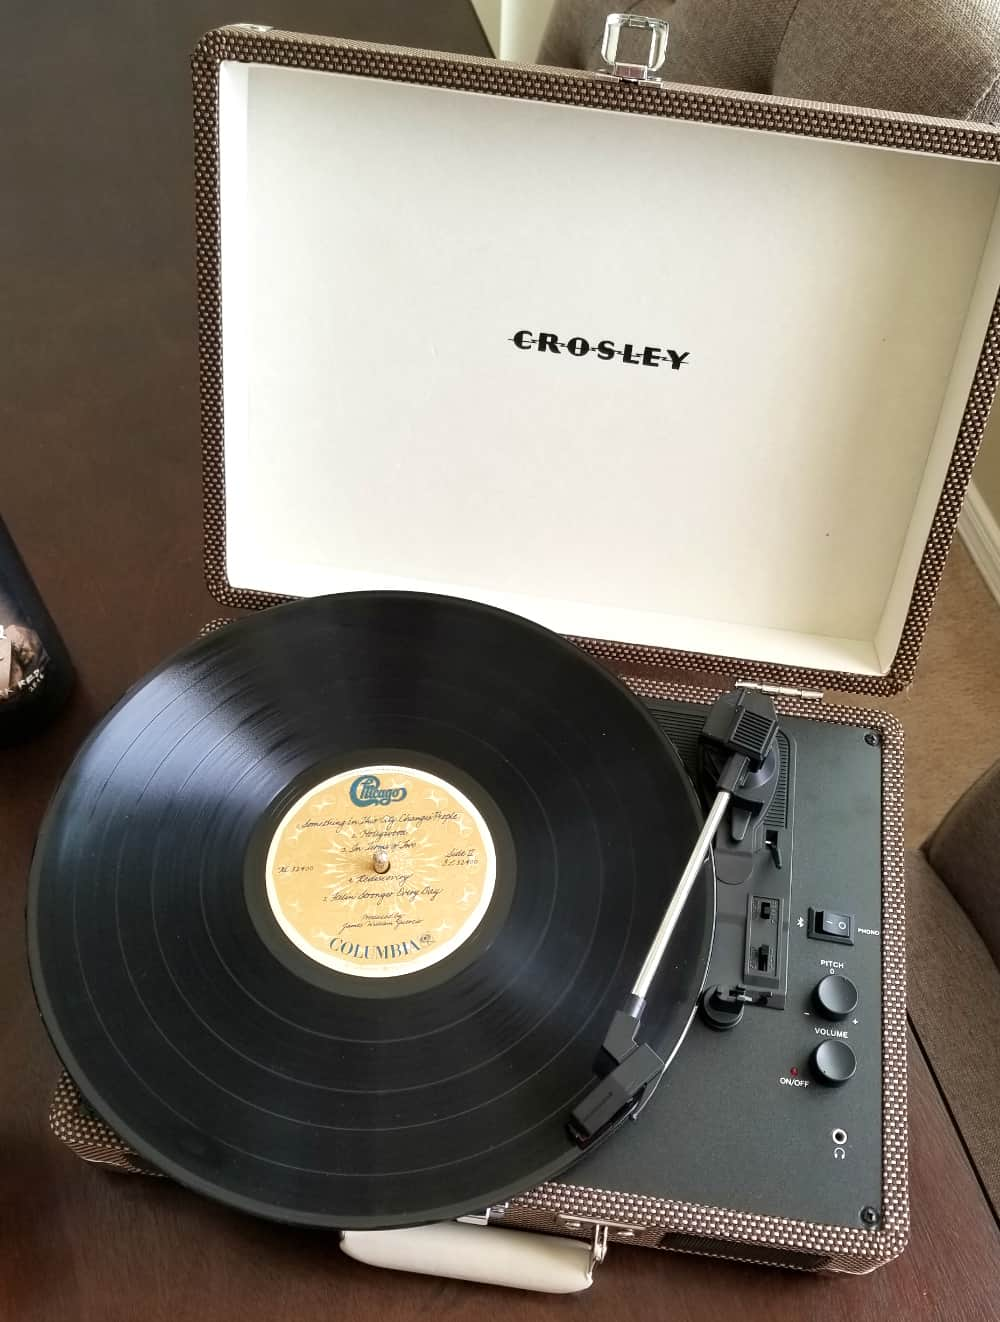 Crosley Record Player